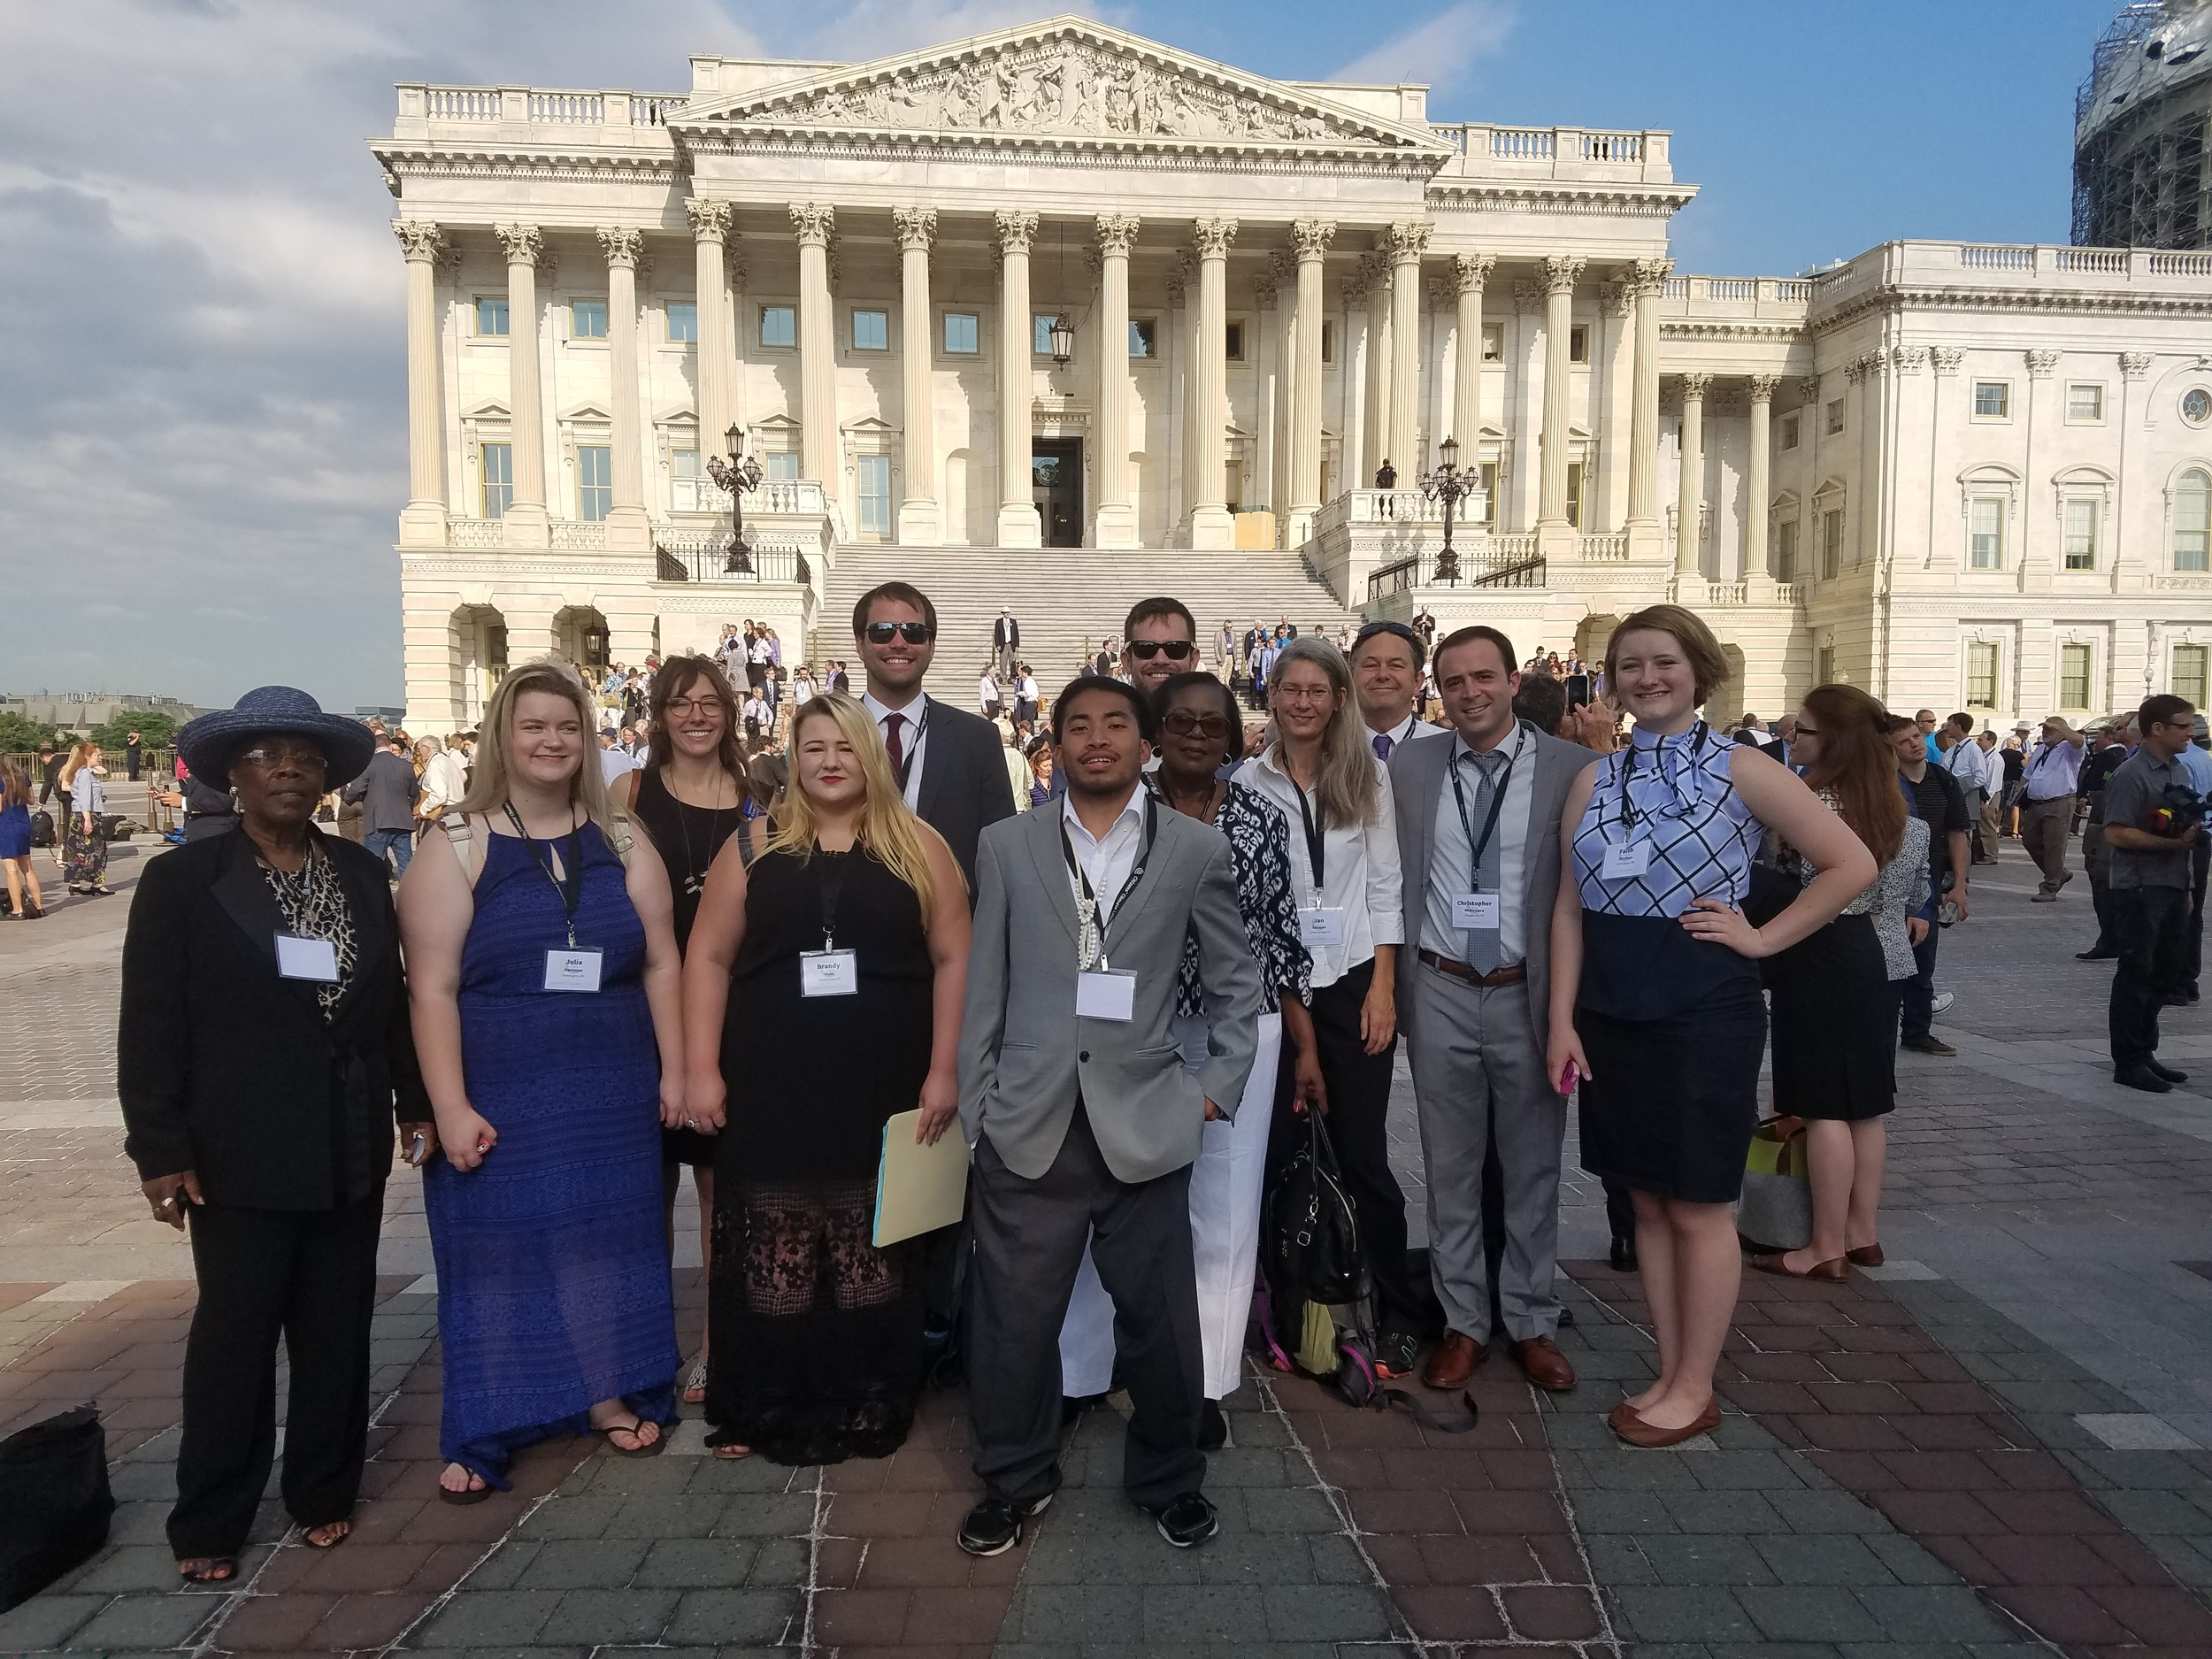 Members of Arkansas Citizens' Climate Lobby traveled to Washington, D.C. June 19th-21st for the Citizens' Climate Lobby National Conference and lobby day. They spent two days at the conference educating and motivating each other and the third day CCL citizen lobbyists met with every congressional office in D.C. to discuss carbon pricing.